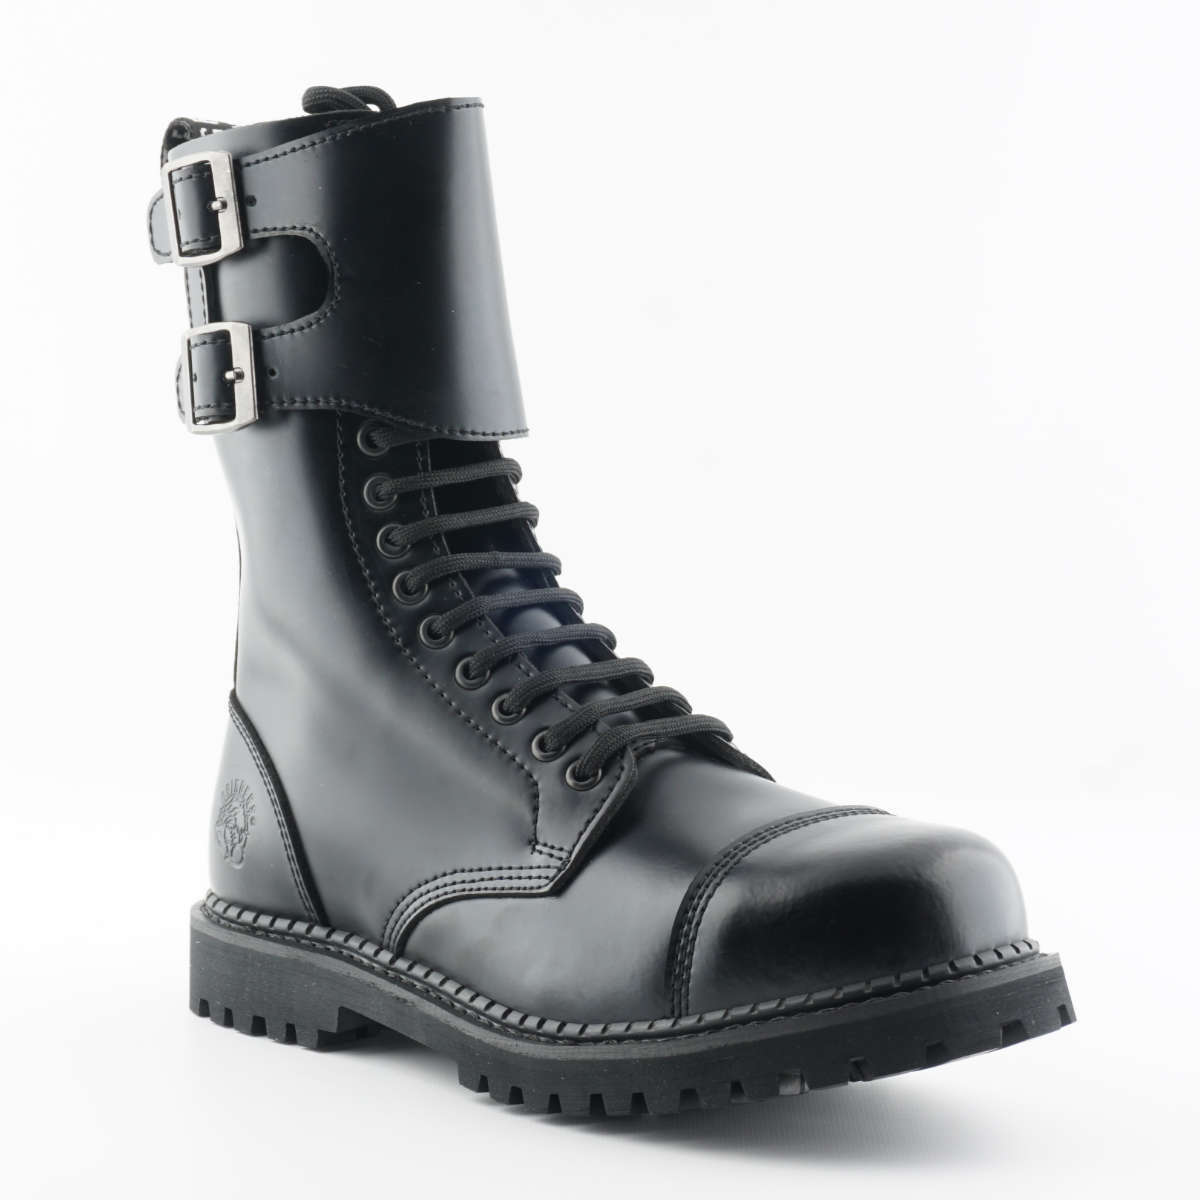 Grinders Camelot CS Black Leather Buckle Biker Steel Toe Goodyear Welted Boots